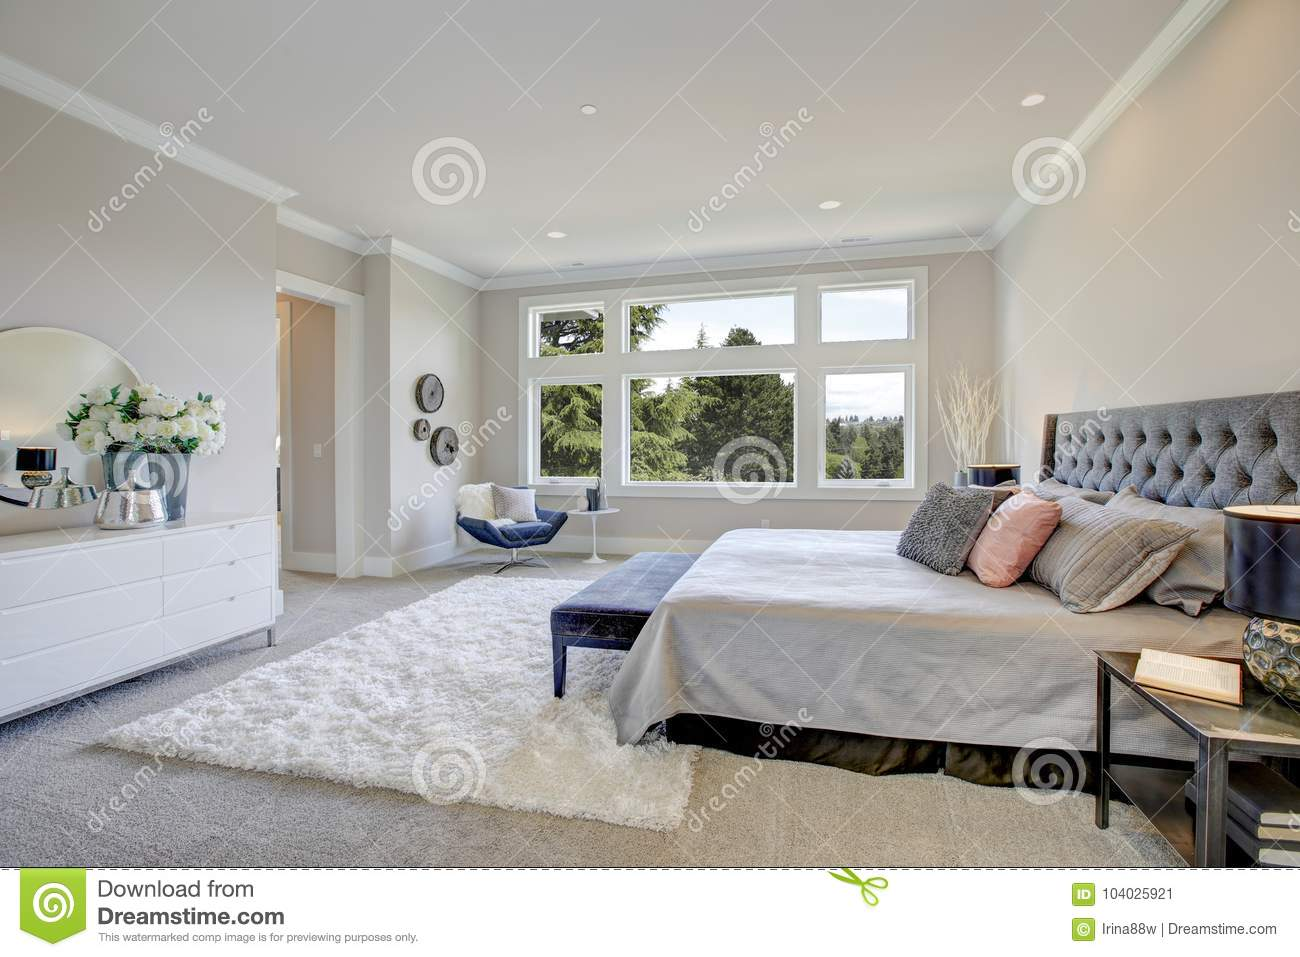 Master Bedroom Interior With King Size Bed Stock Image Image Of Floor Inside 104025921